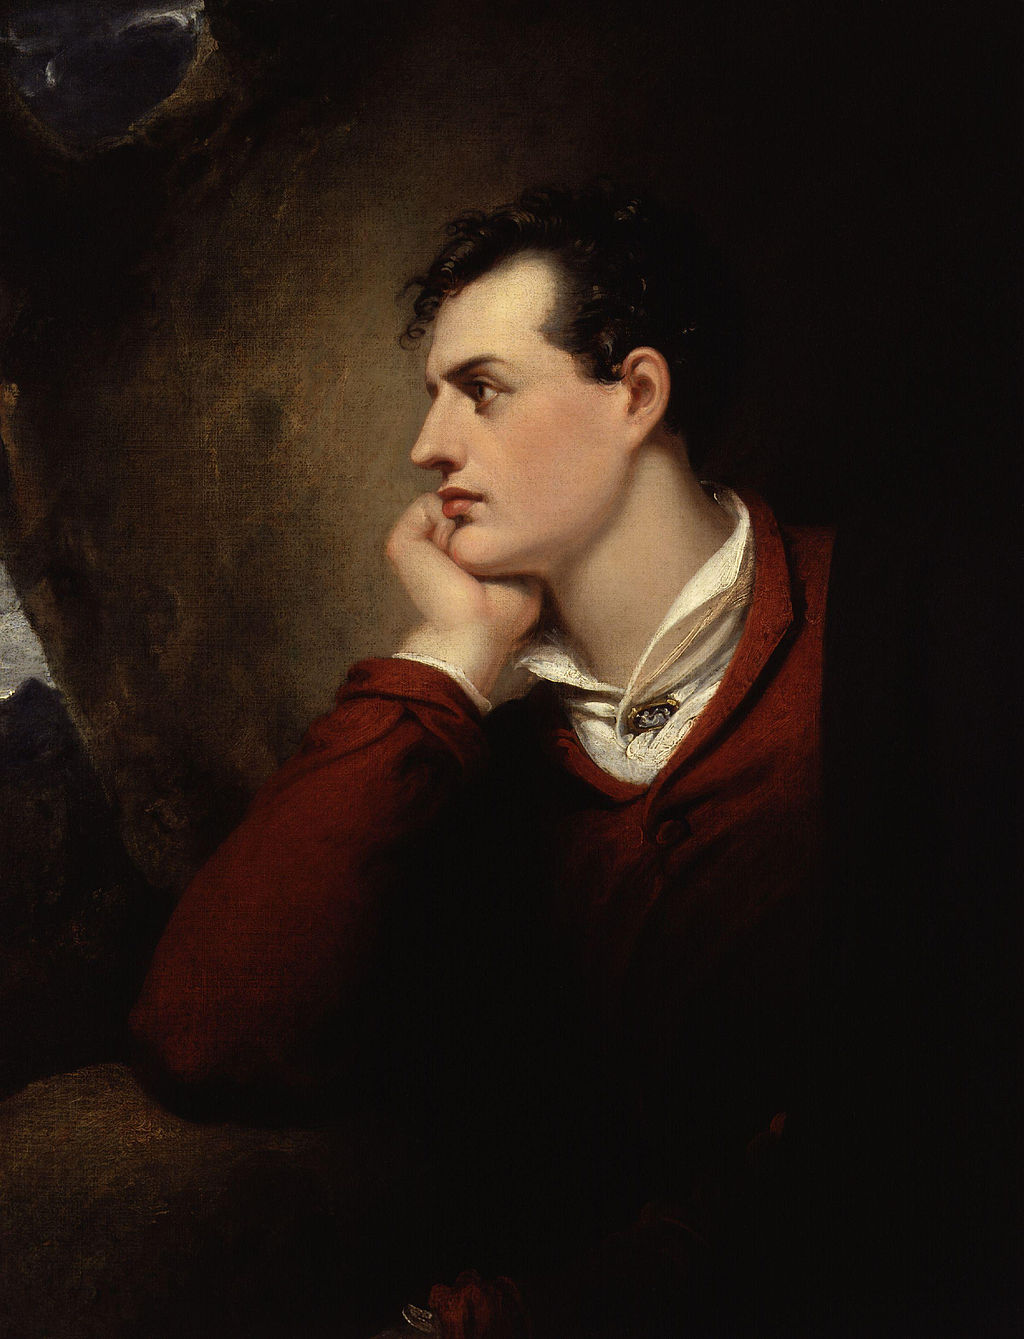 Byron was a handsome scoundrel